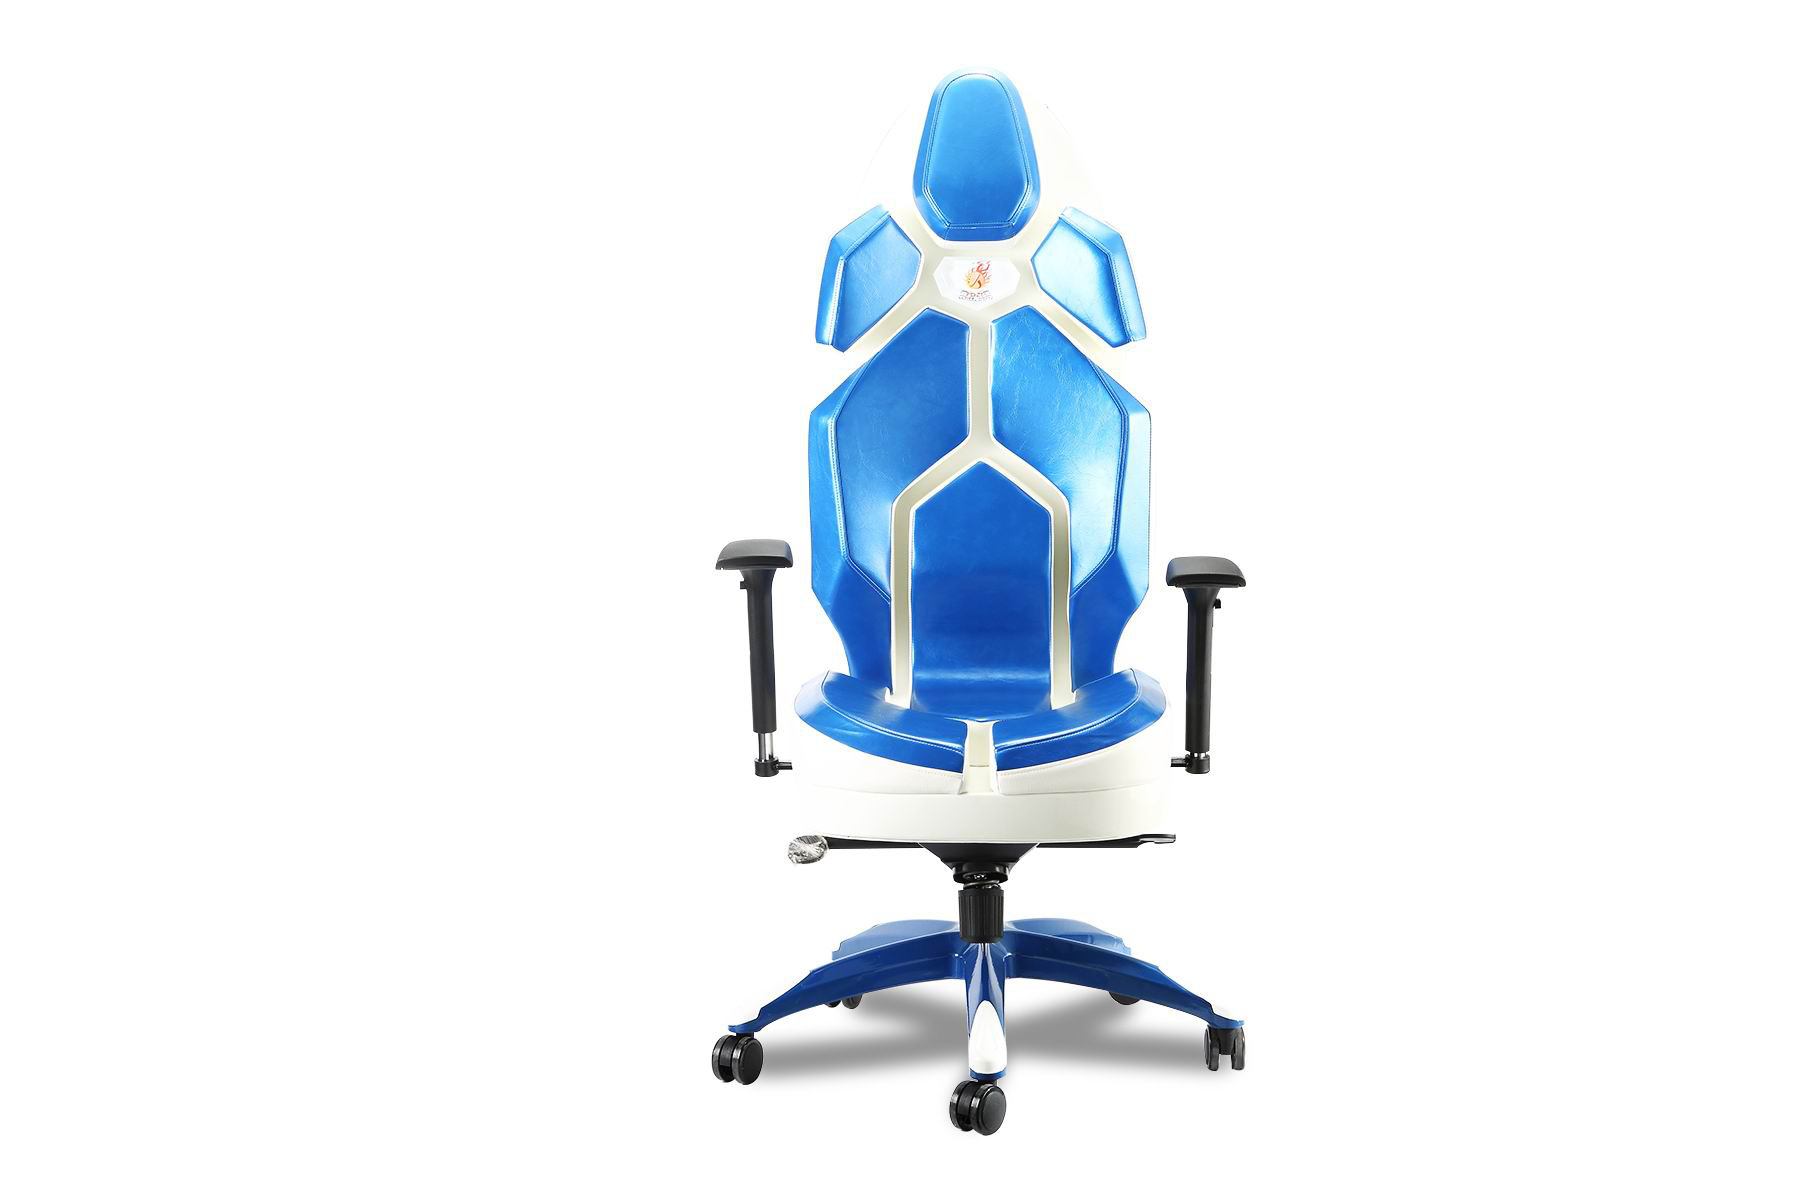 The White Metal Paint Blue Wax Leather Fashion Office Chair